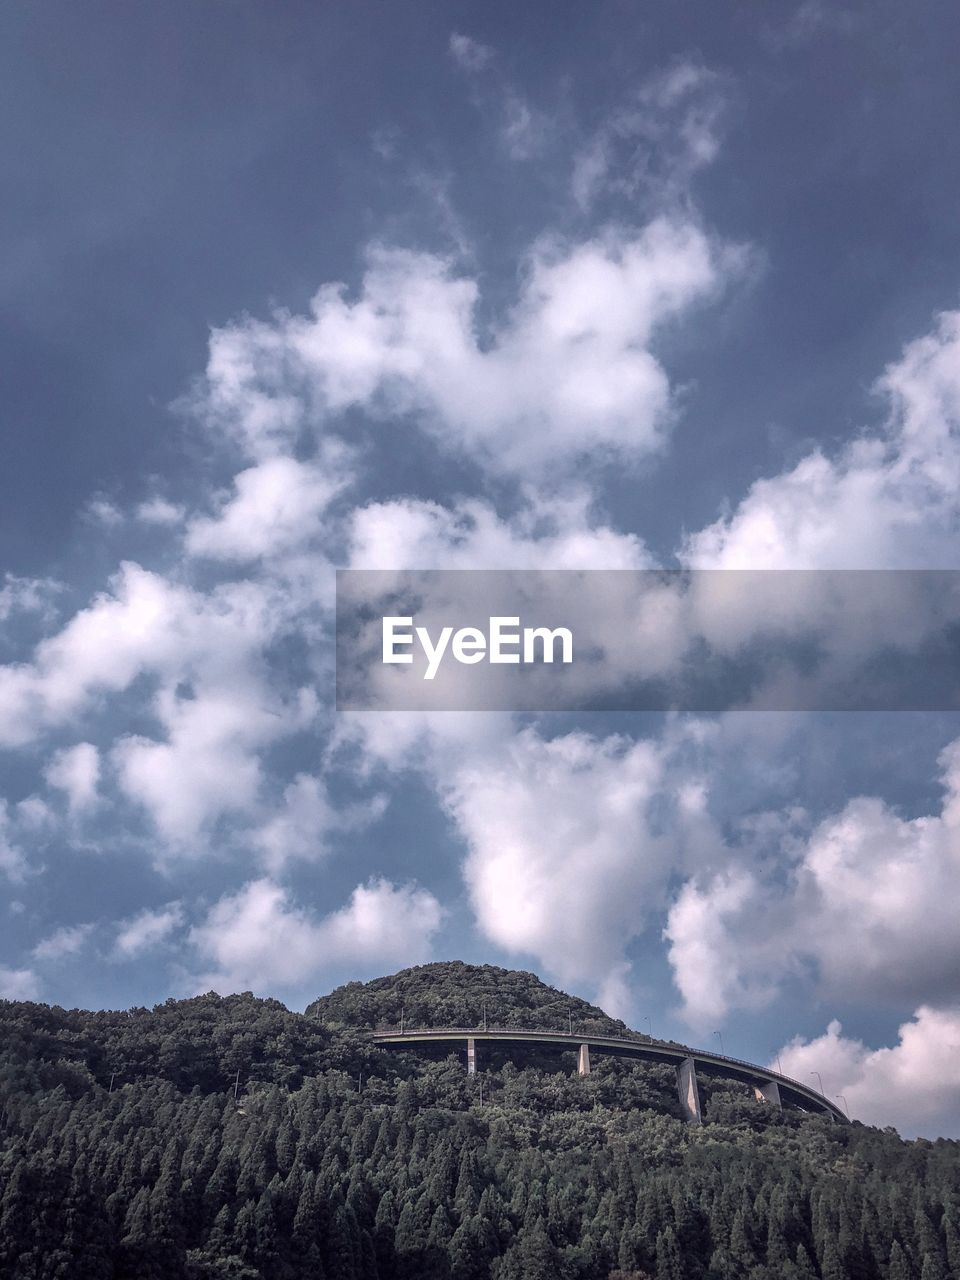 sky, cloud - sky, beauty in nature, mountain, scenics - nature, low angle view, tranquil scene, tranquility, nature, non-urban scene, day, environment, no people, landscape, land, rock, physical geography, outdoors, plant, tree, formation, mountain peak